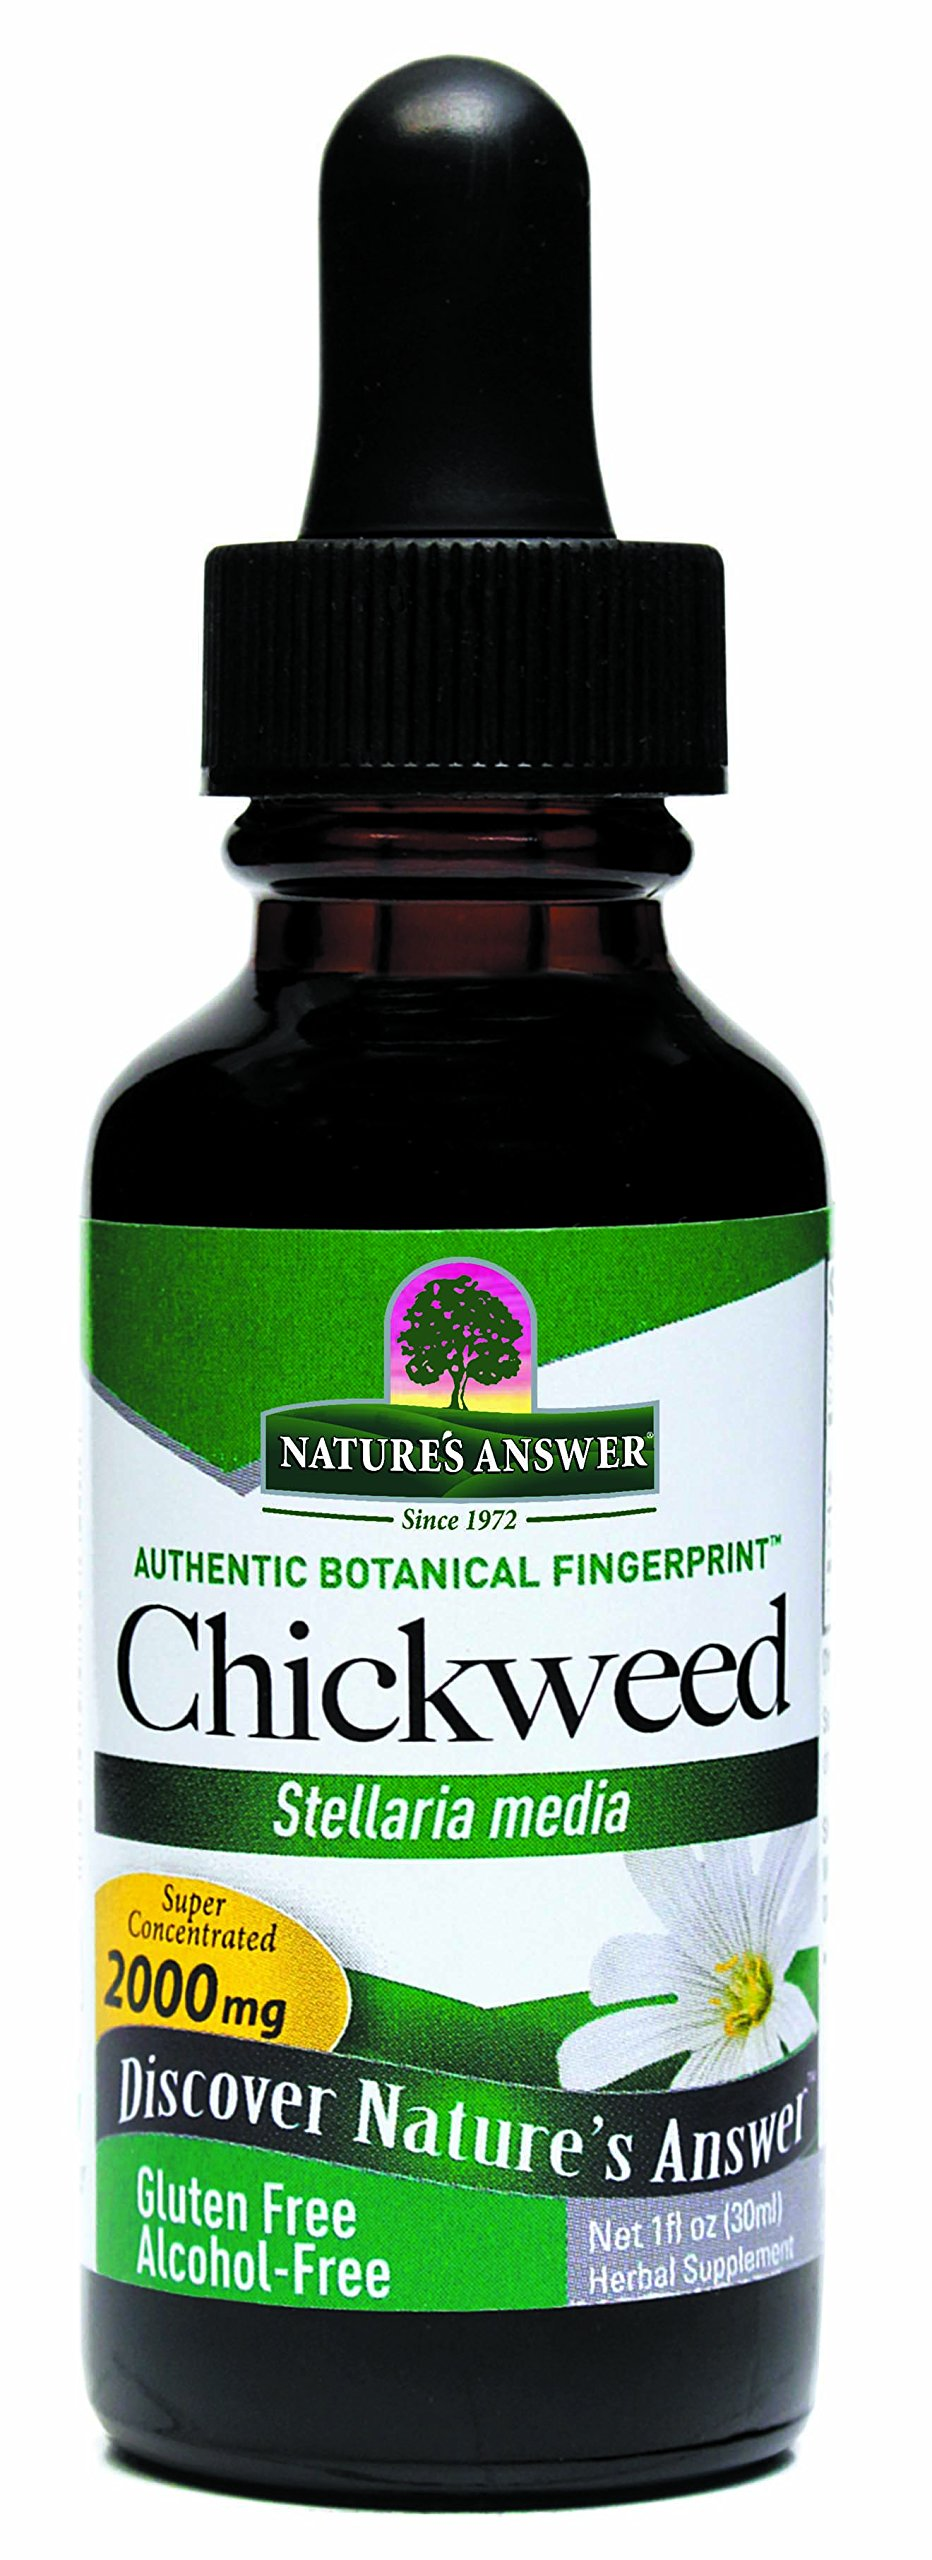 Nature's Answer Alcohol-Free Chickweed Herb, 1-Fluid Ounce by Nature's Answer